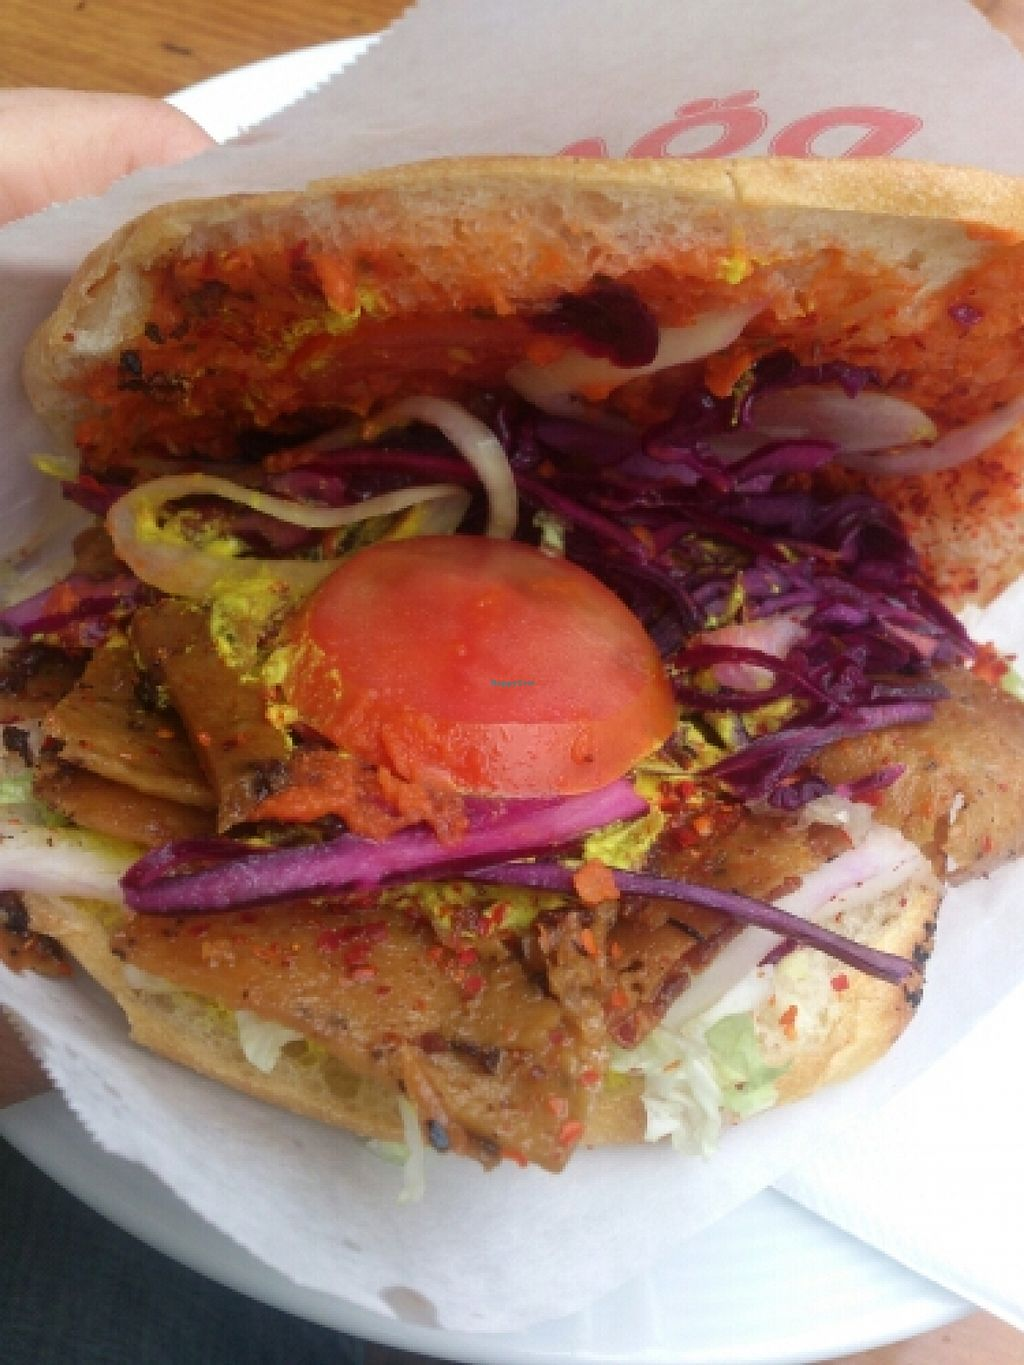 """Photo of CLOSED: Royal Kebabhaus  by <a href=""""/members/profile/Tank242"""">Tank242</a> <br/>best Döner in town <br/> May 11, 2016  - <a href='/contact/abuse/image/28298/148471'>Report</a>"""